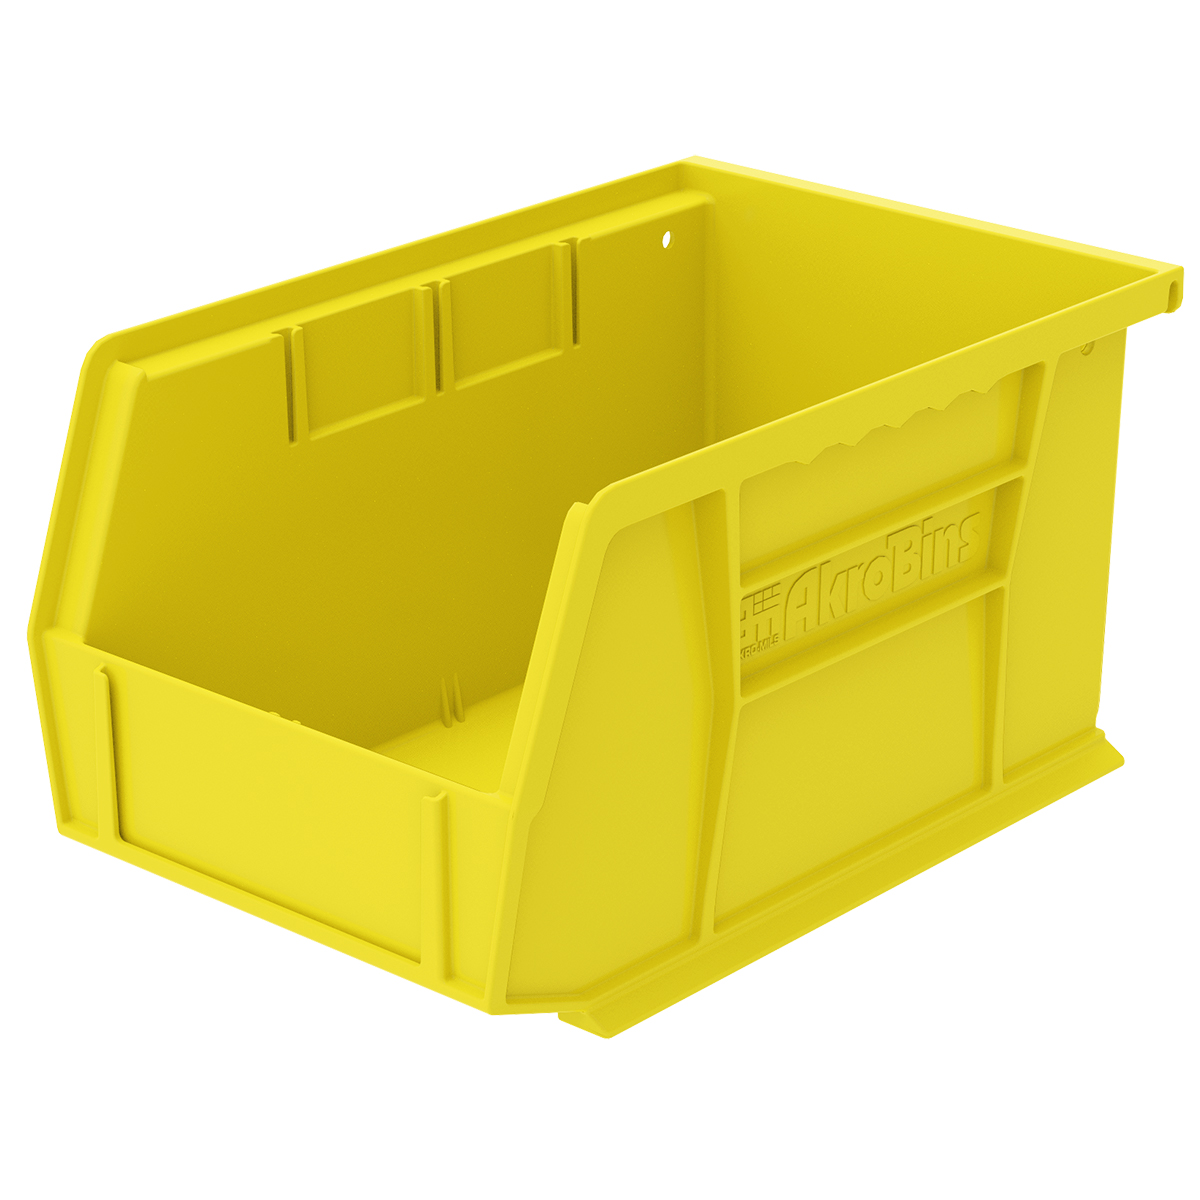 AkroBin 9-1/4 x 6 x 5, Yellow (30237YELLO).  This item sold in carton quantities of 12.